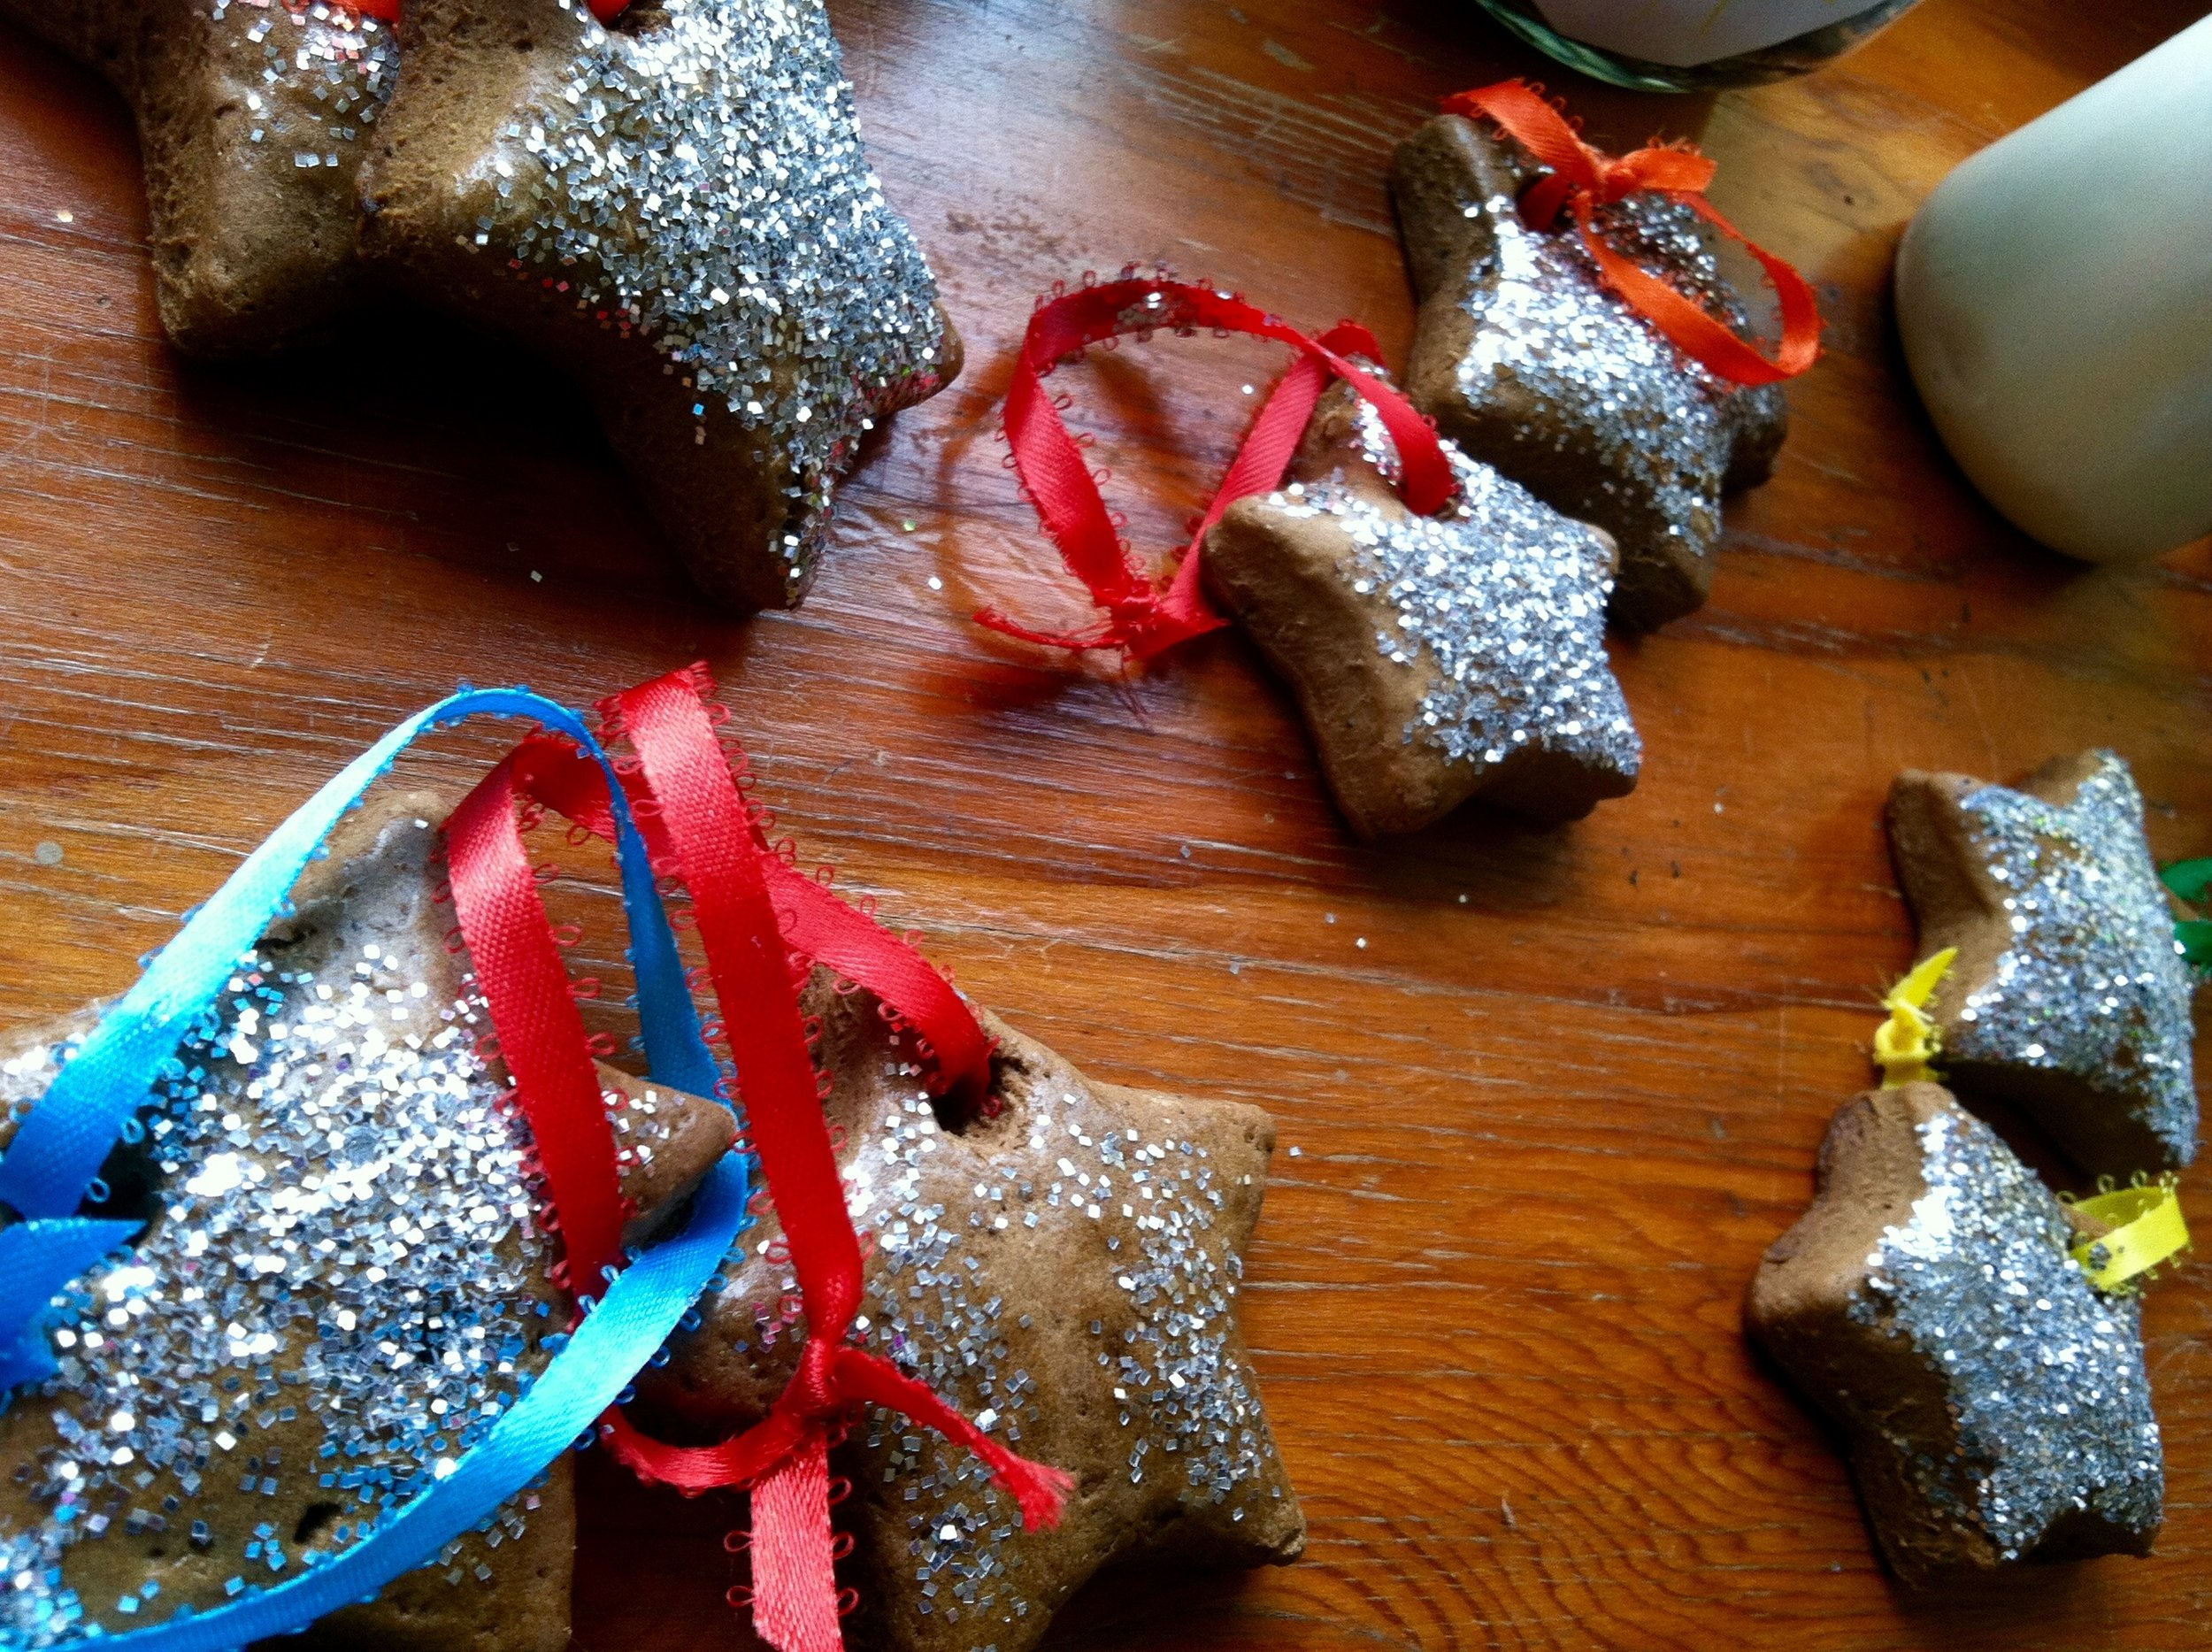 Simple, seasonal crafts made by eager little hands